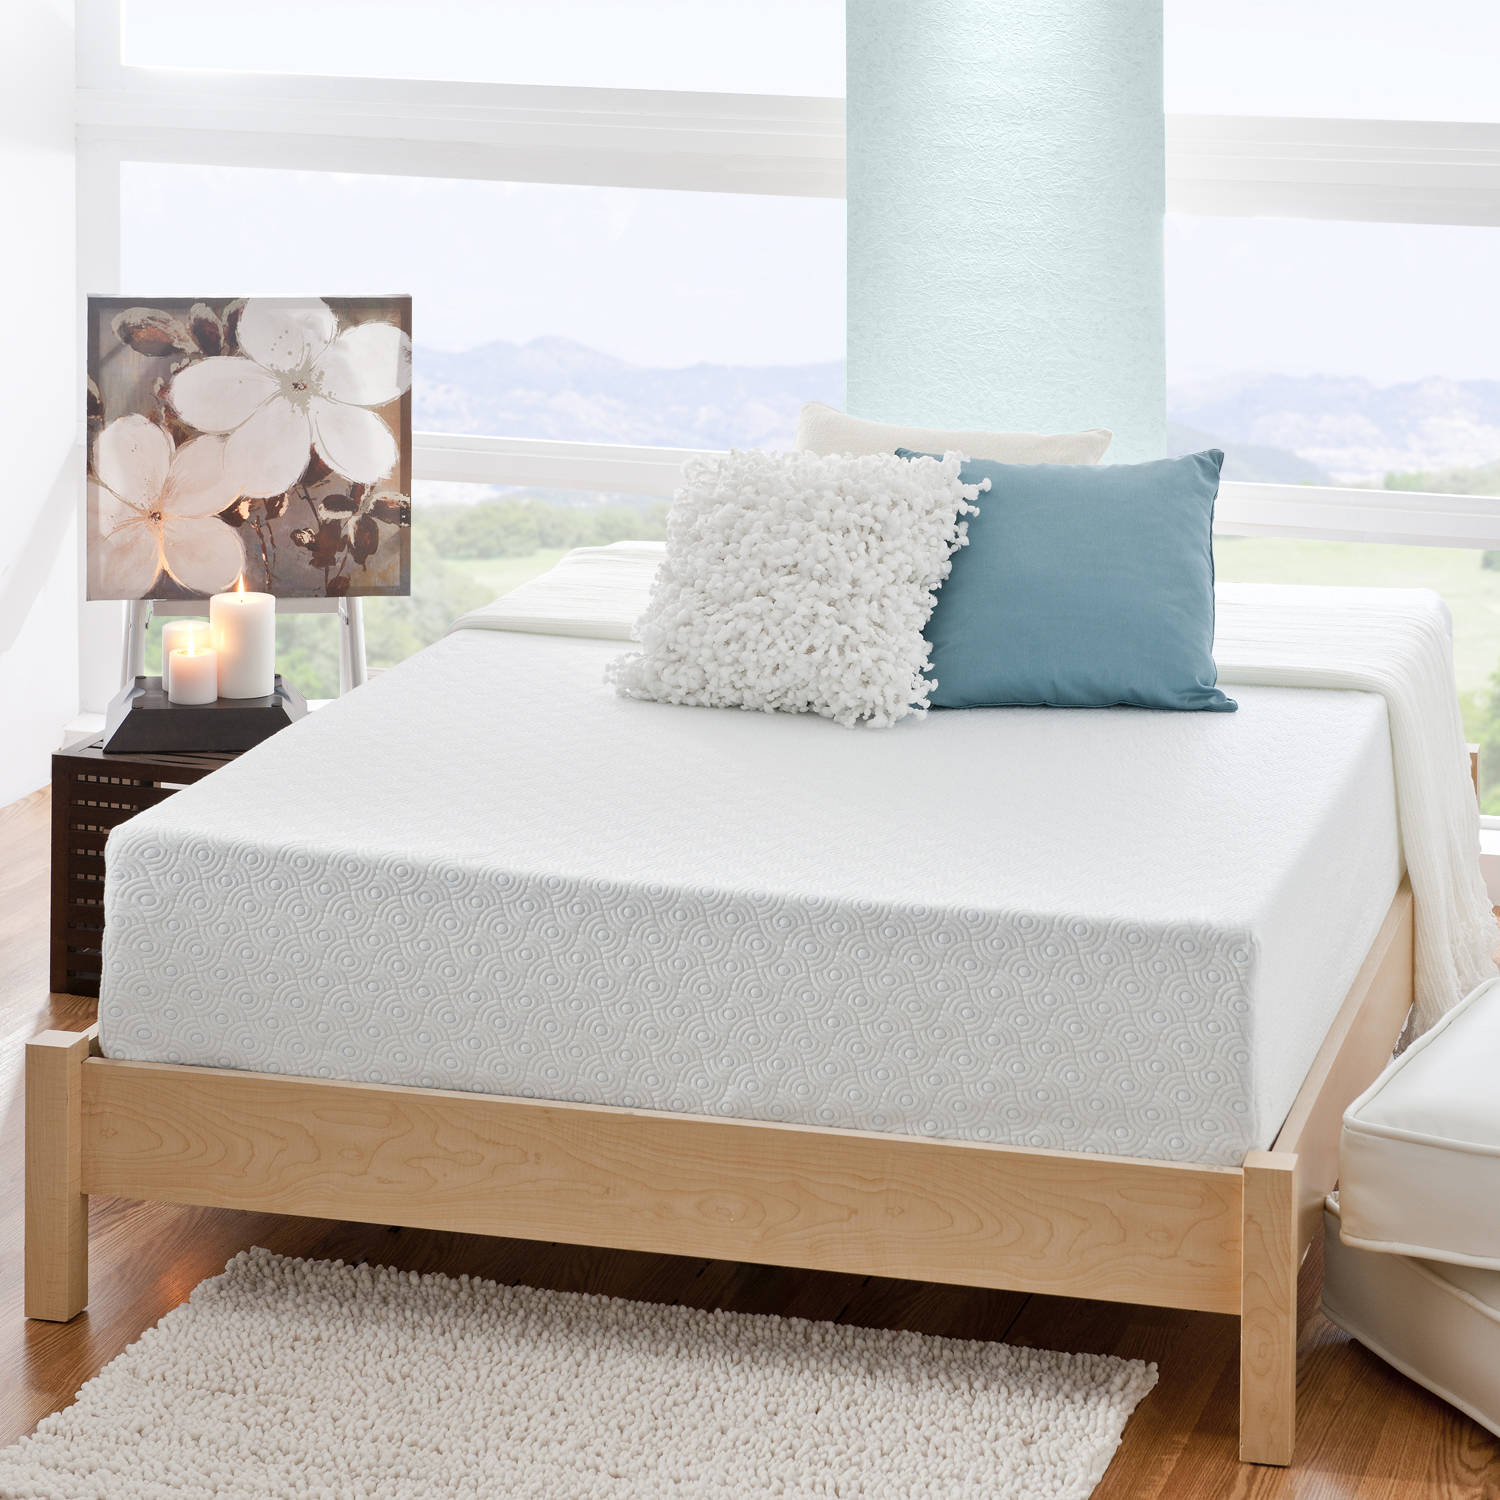 Spa Sensations Mygel 12 Mattress Reviews This button pops up a carousel that allows scrolling through close up ...